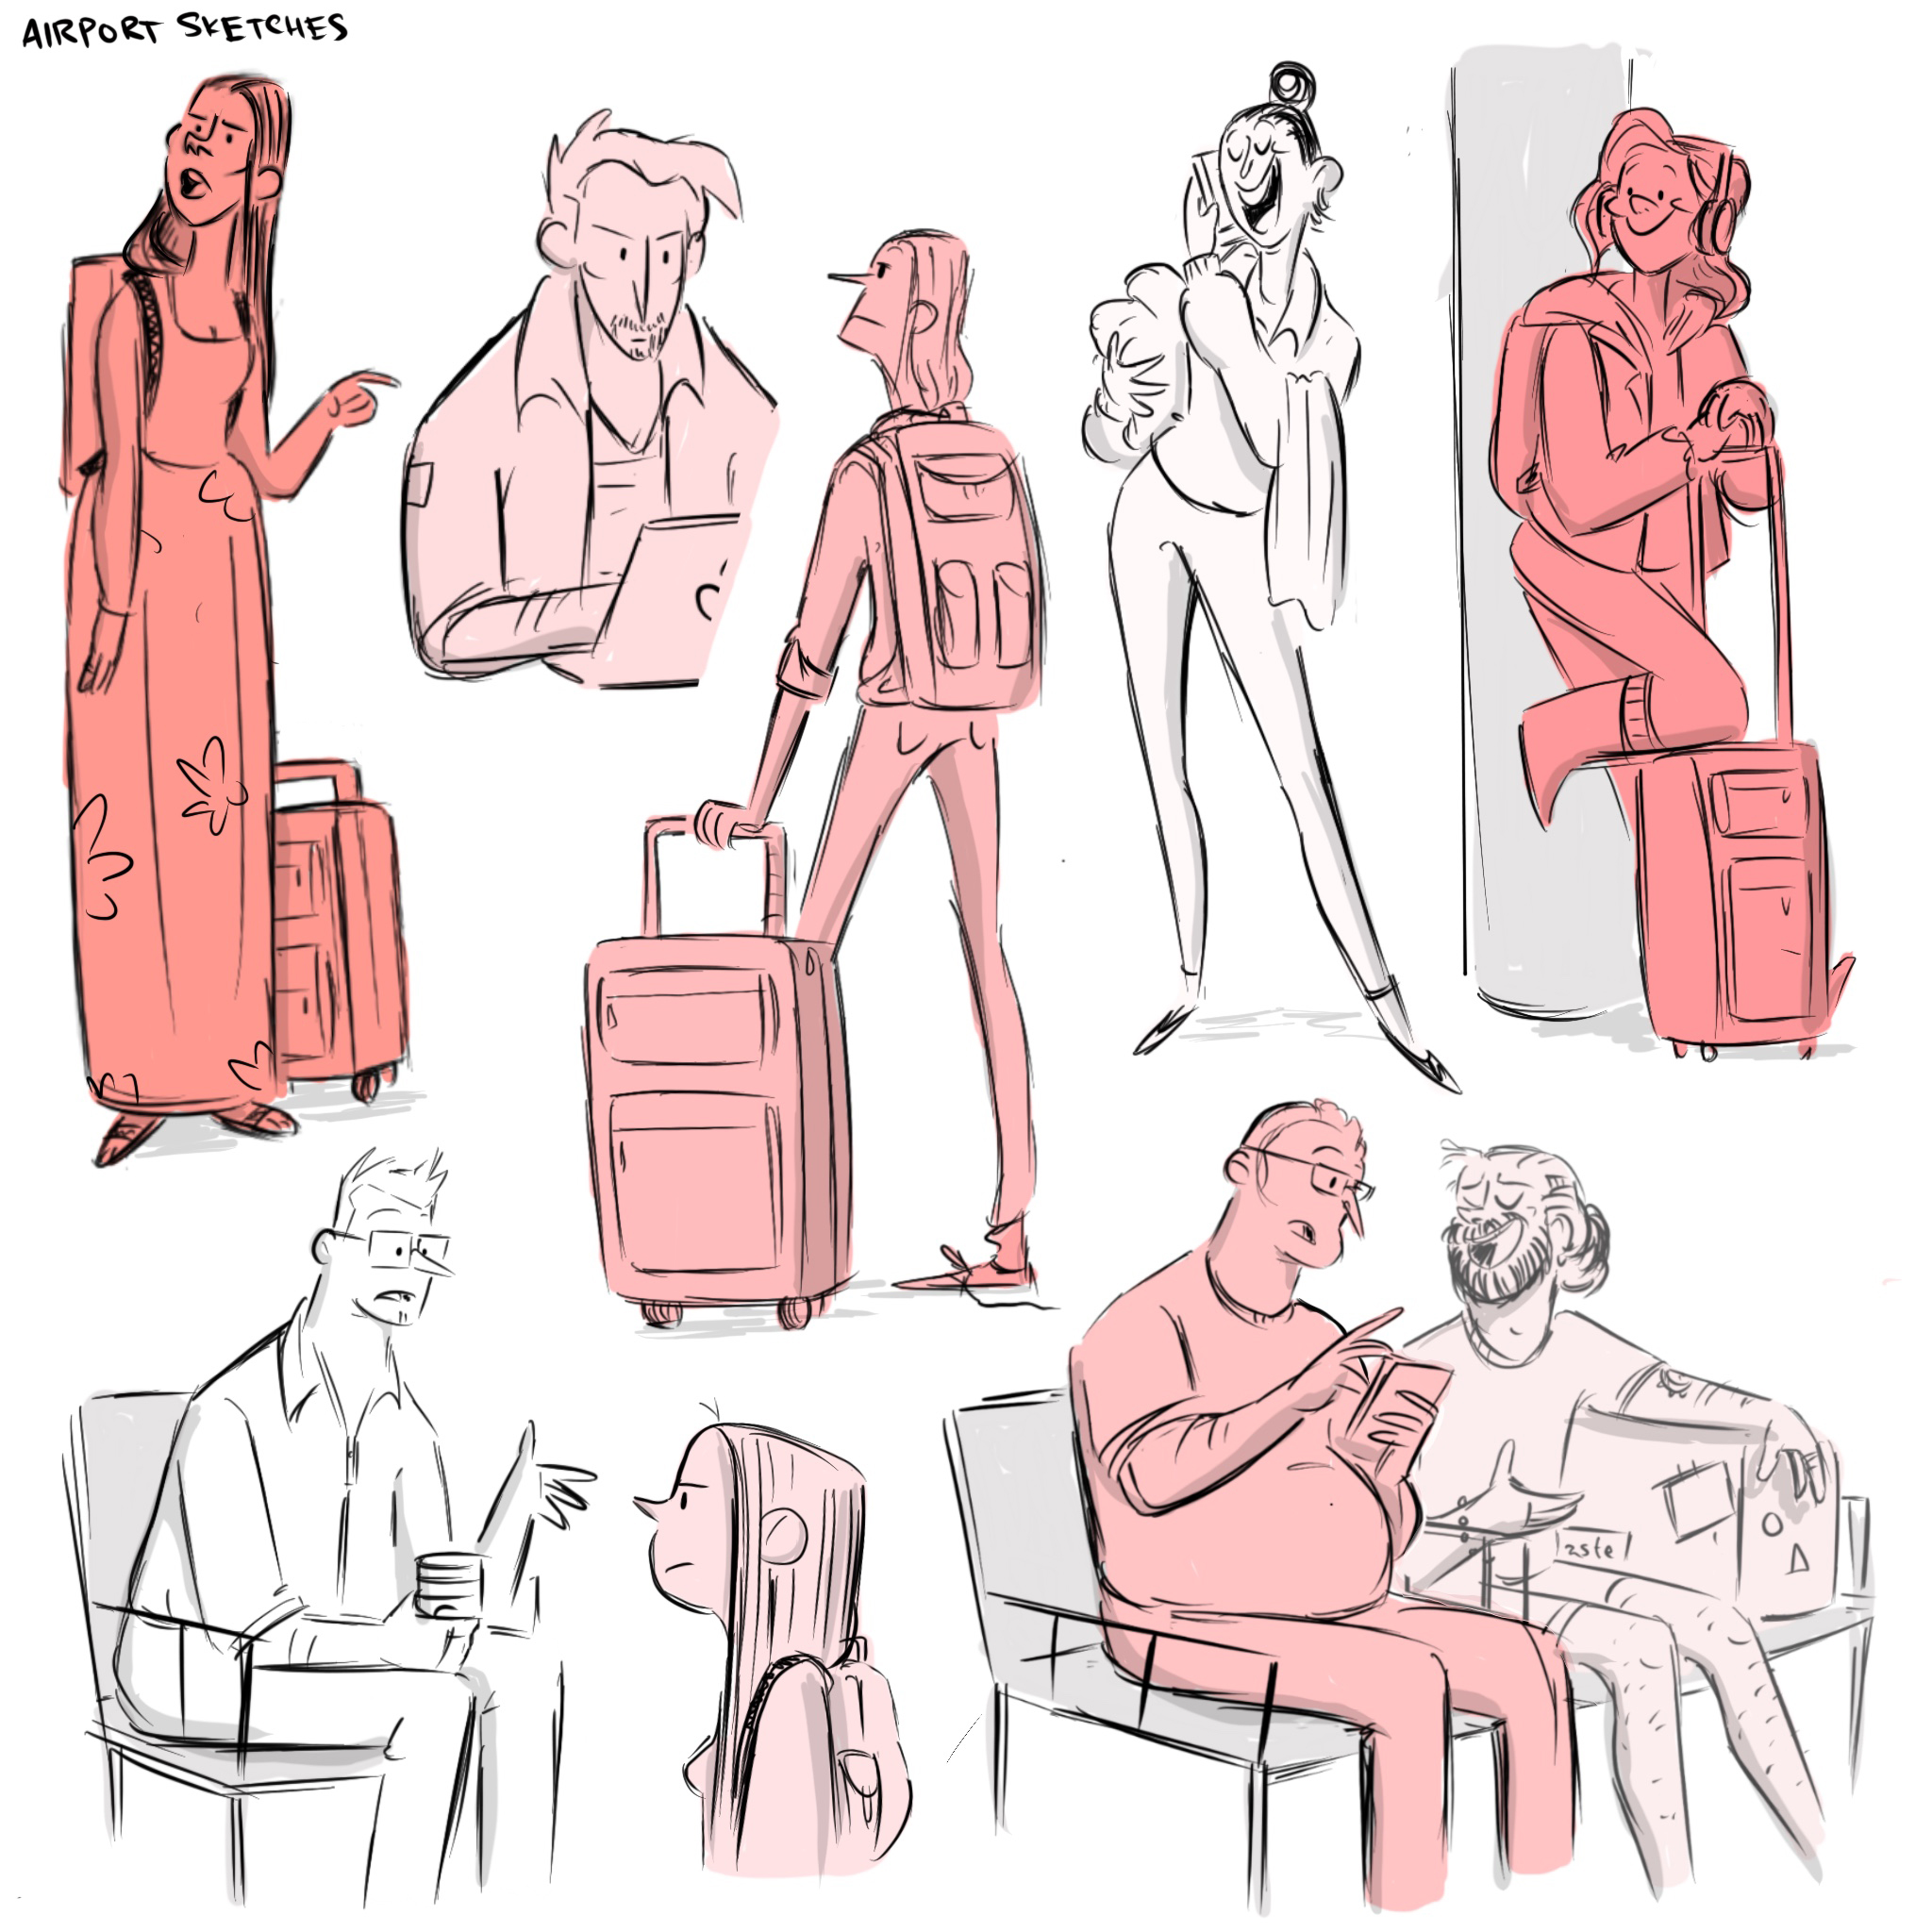 airport_sketches.jpg